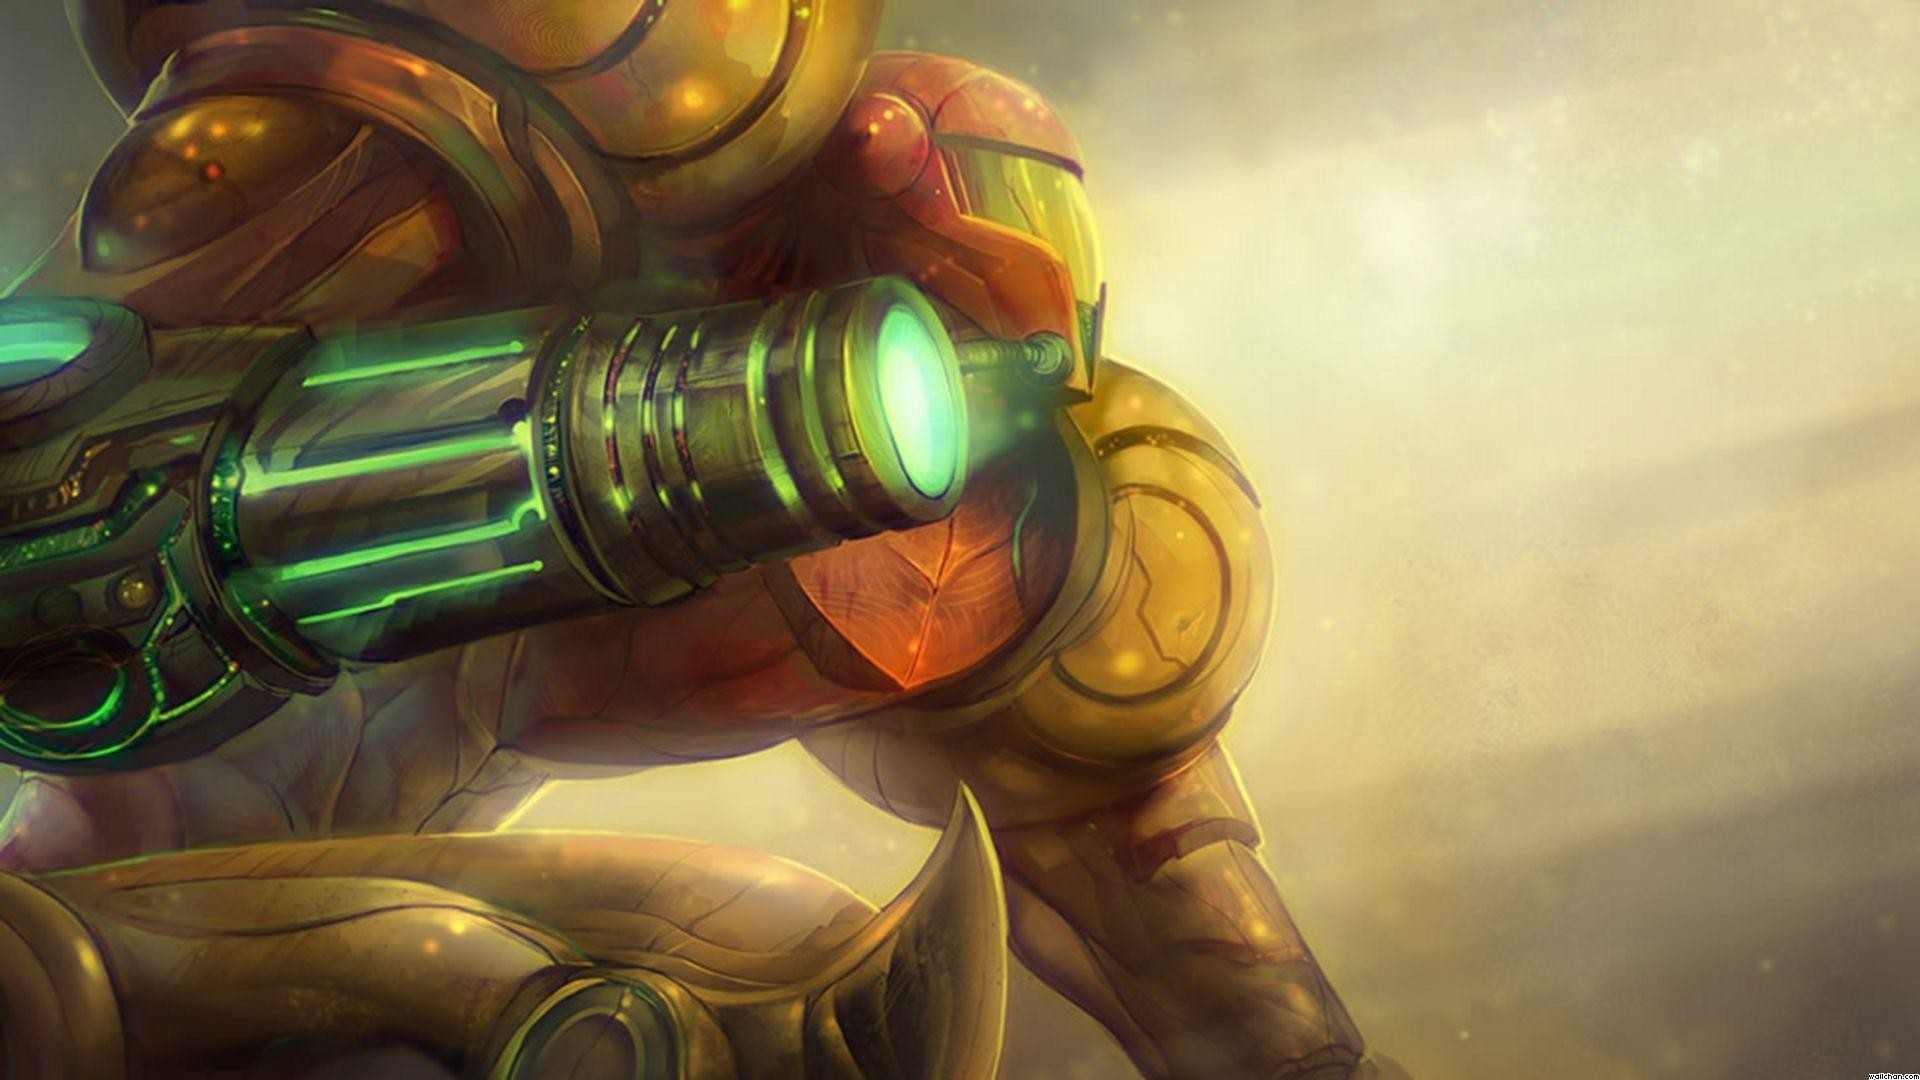 Images For > Metroid Wallpaper 1080p